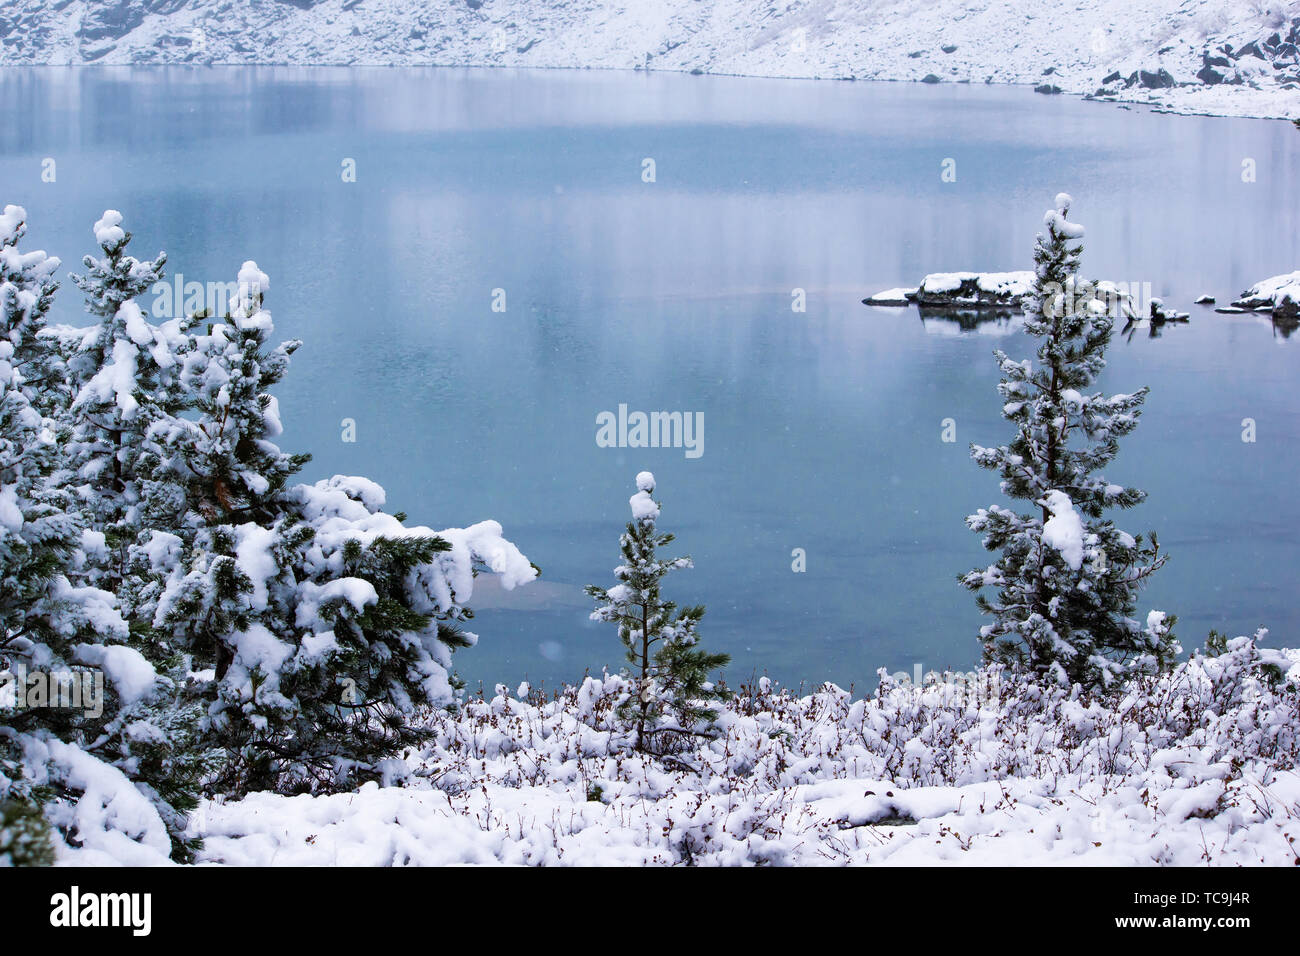 Winter forest on shore of mountain lake. Snow on pines, snowfall Stock Photo